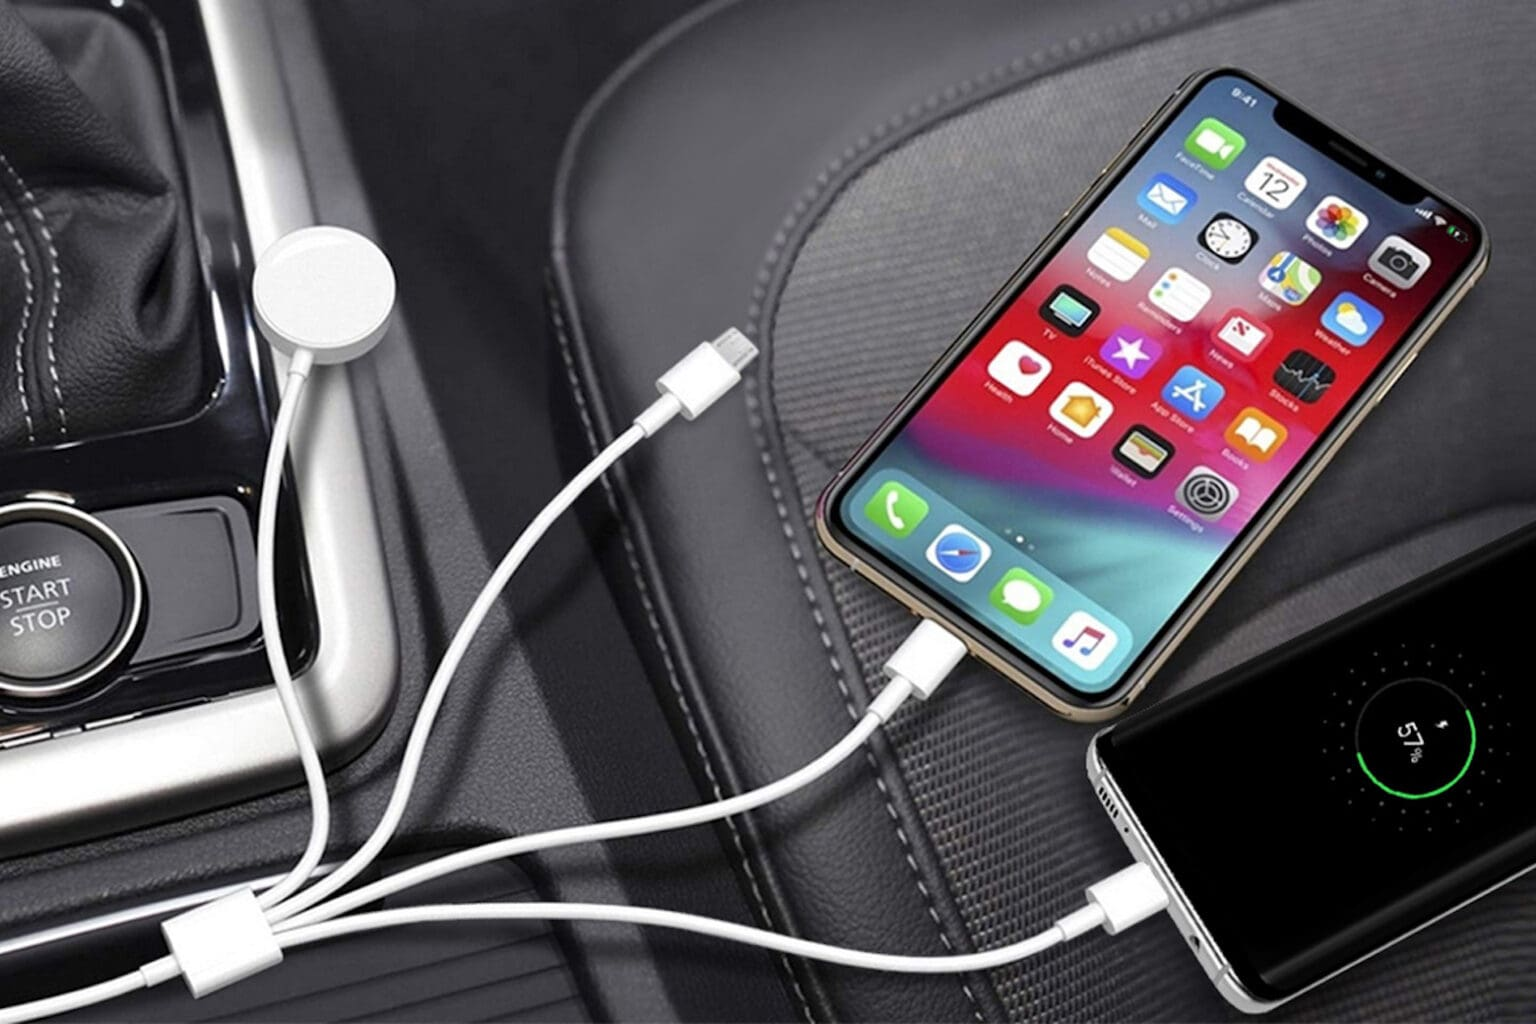 This 4-in-1 Apple charger powers up all your devices.